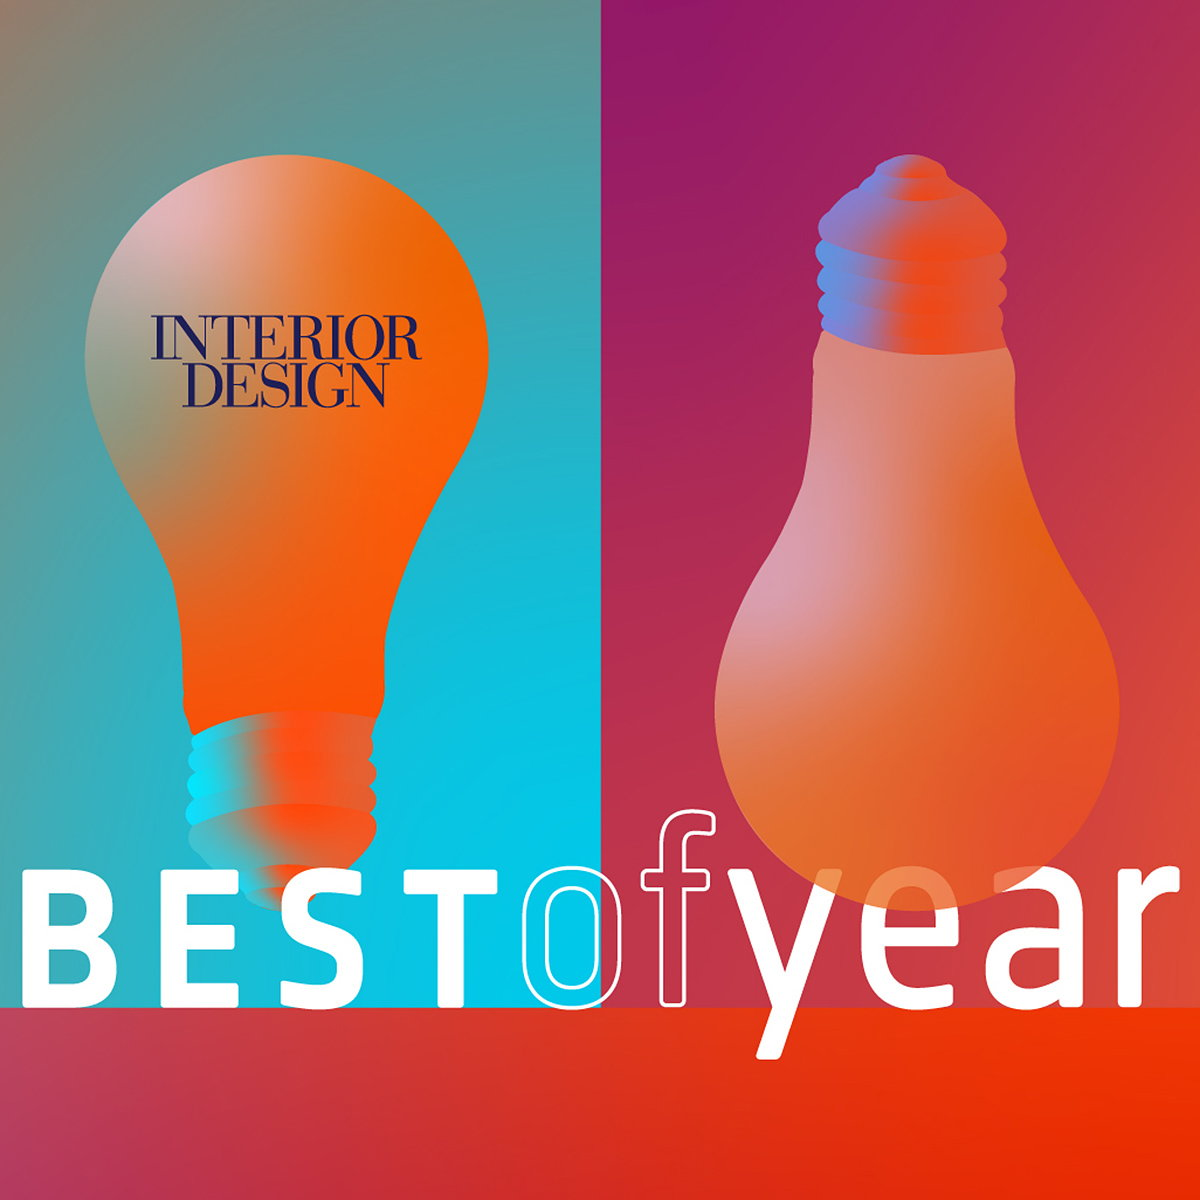 Interior Design's Best of Year Awards 2020